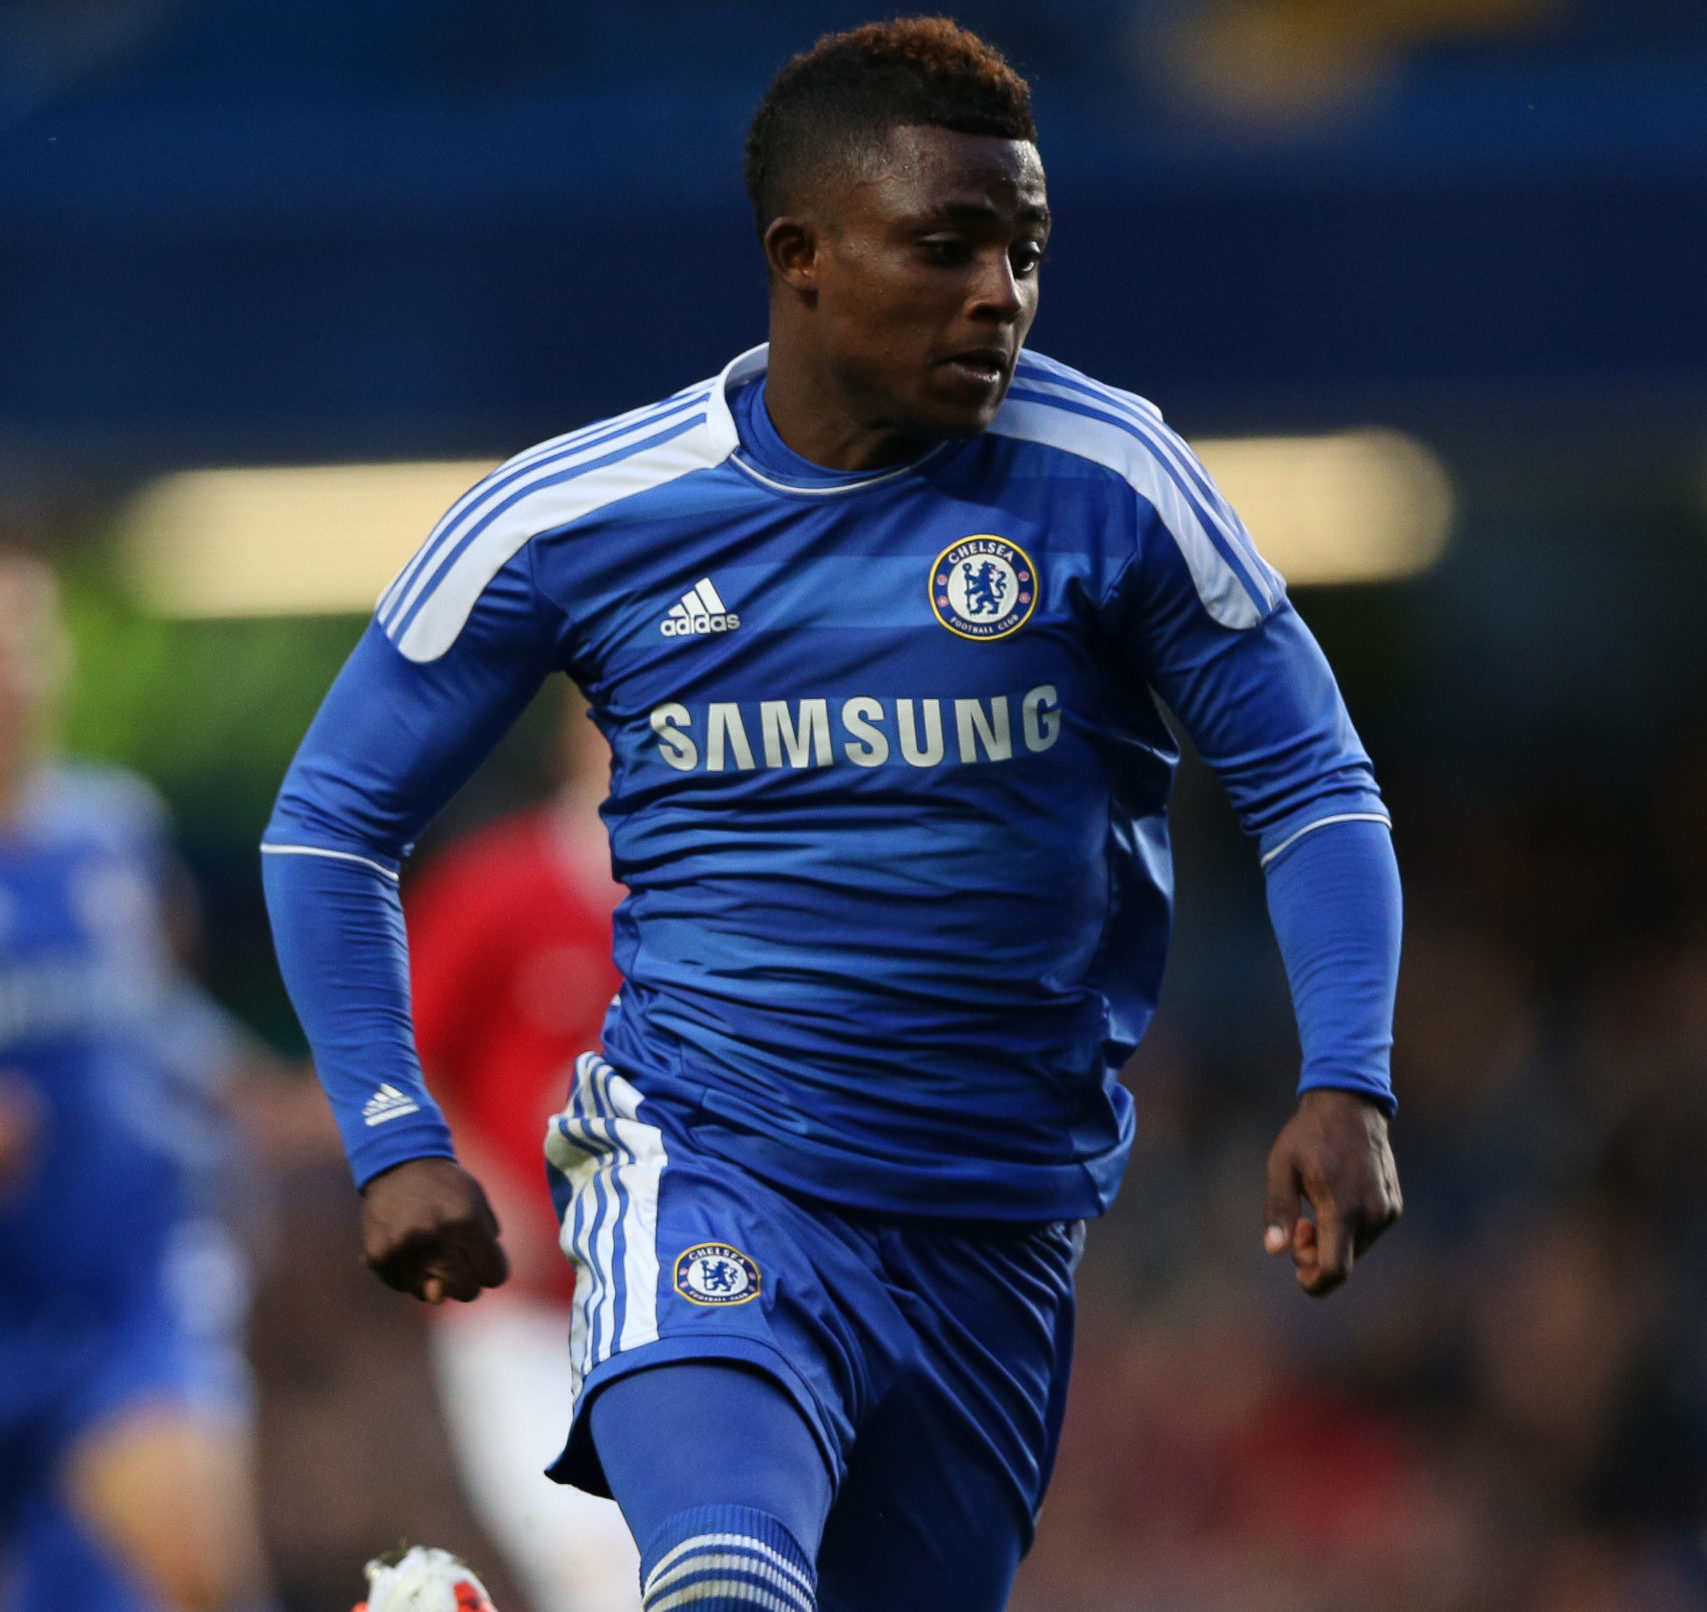 Islam Feruz playing for Chelsea's youth side in 2012, aged just 16